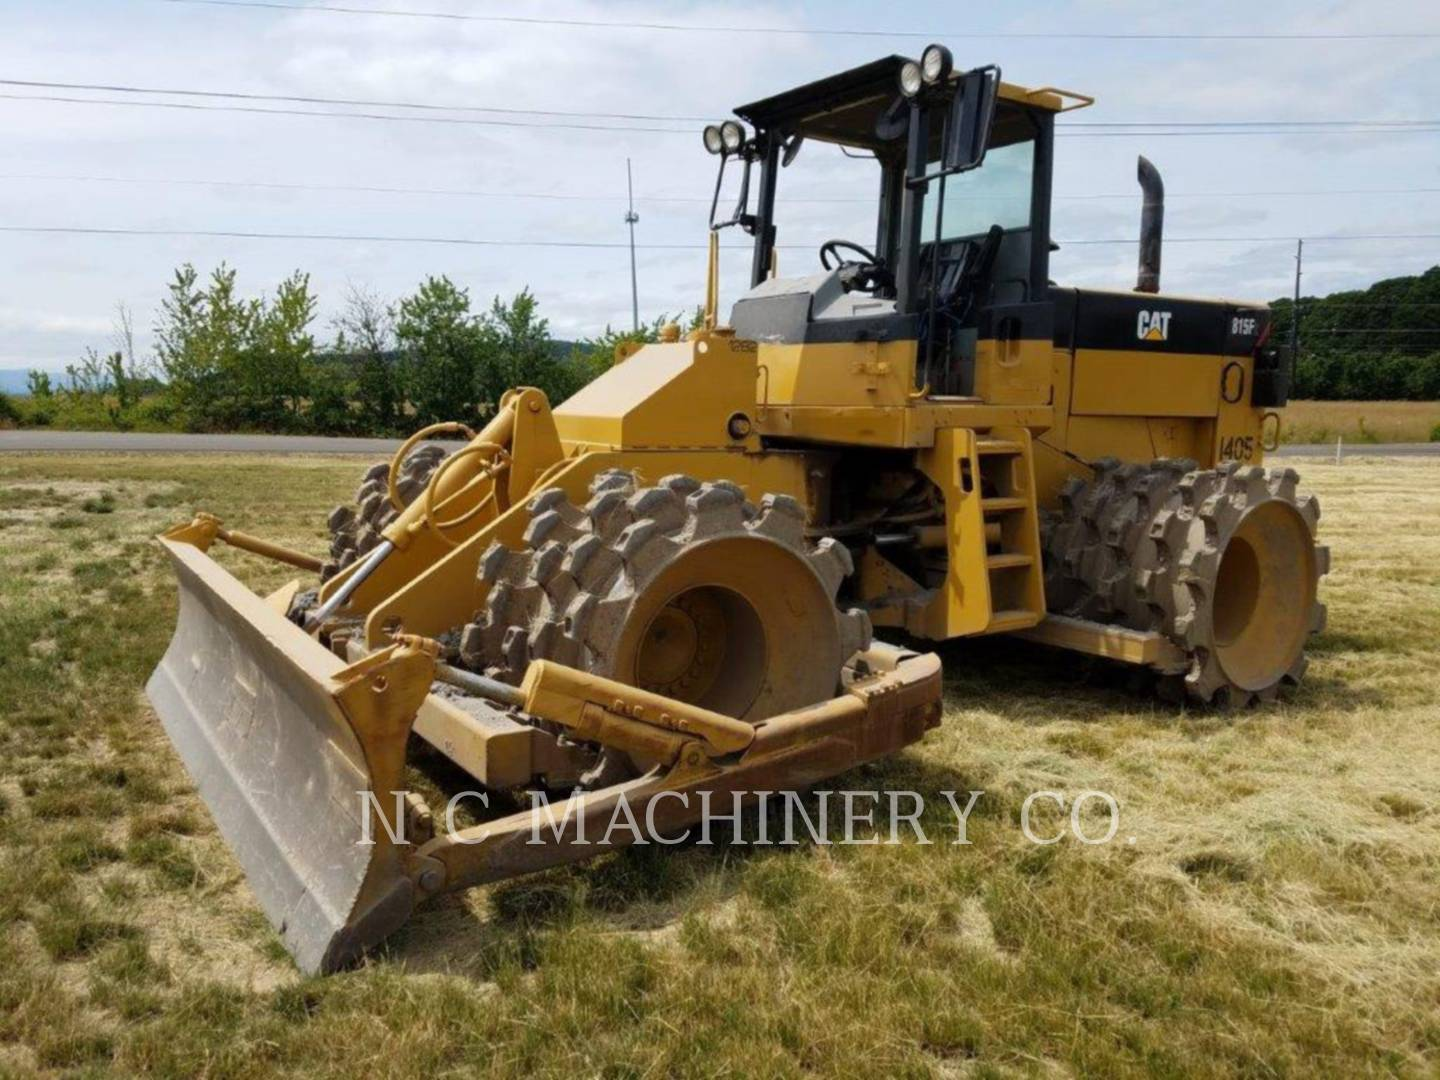 1998 Caterpillar 815 Compacting and Paving